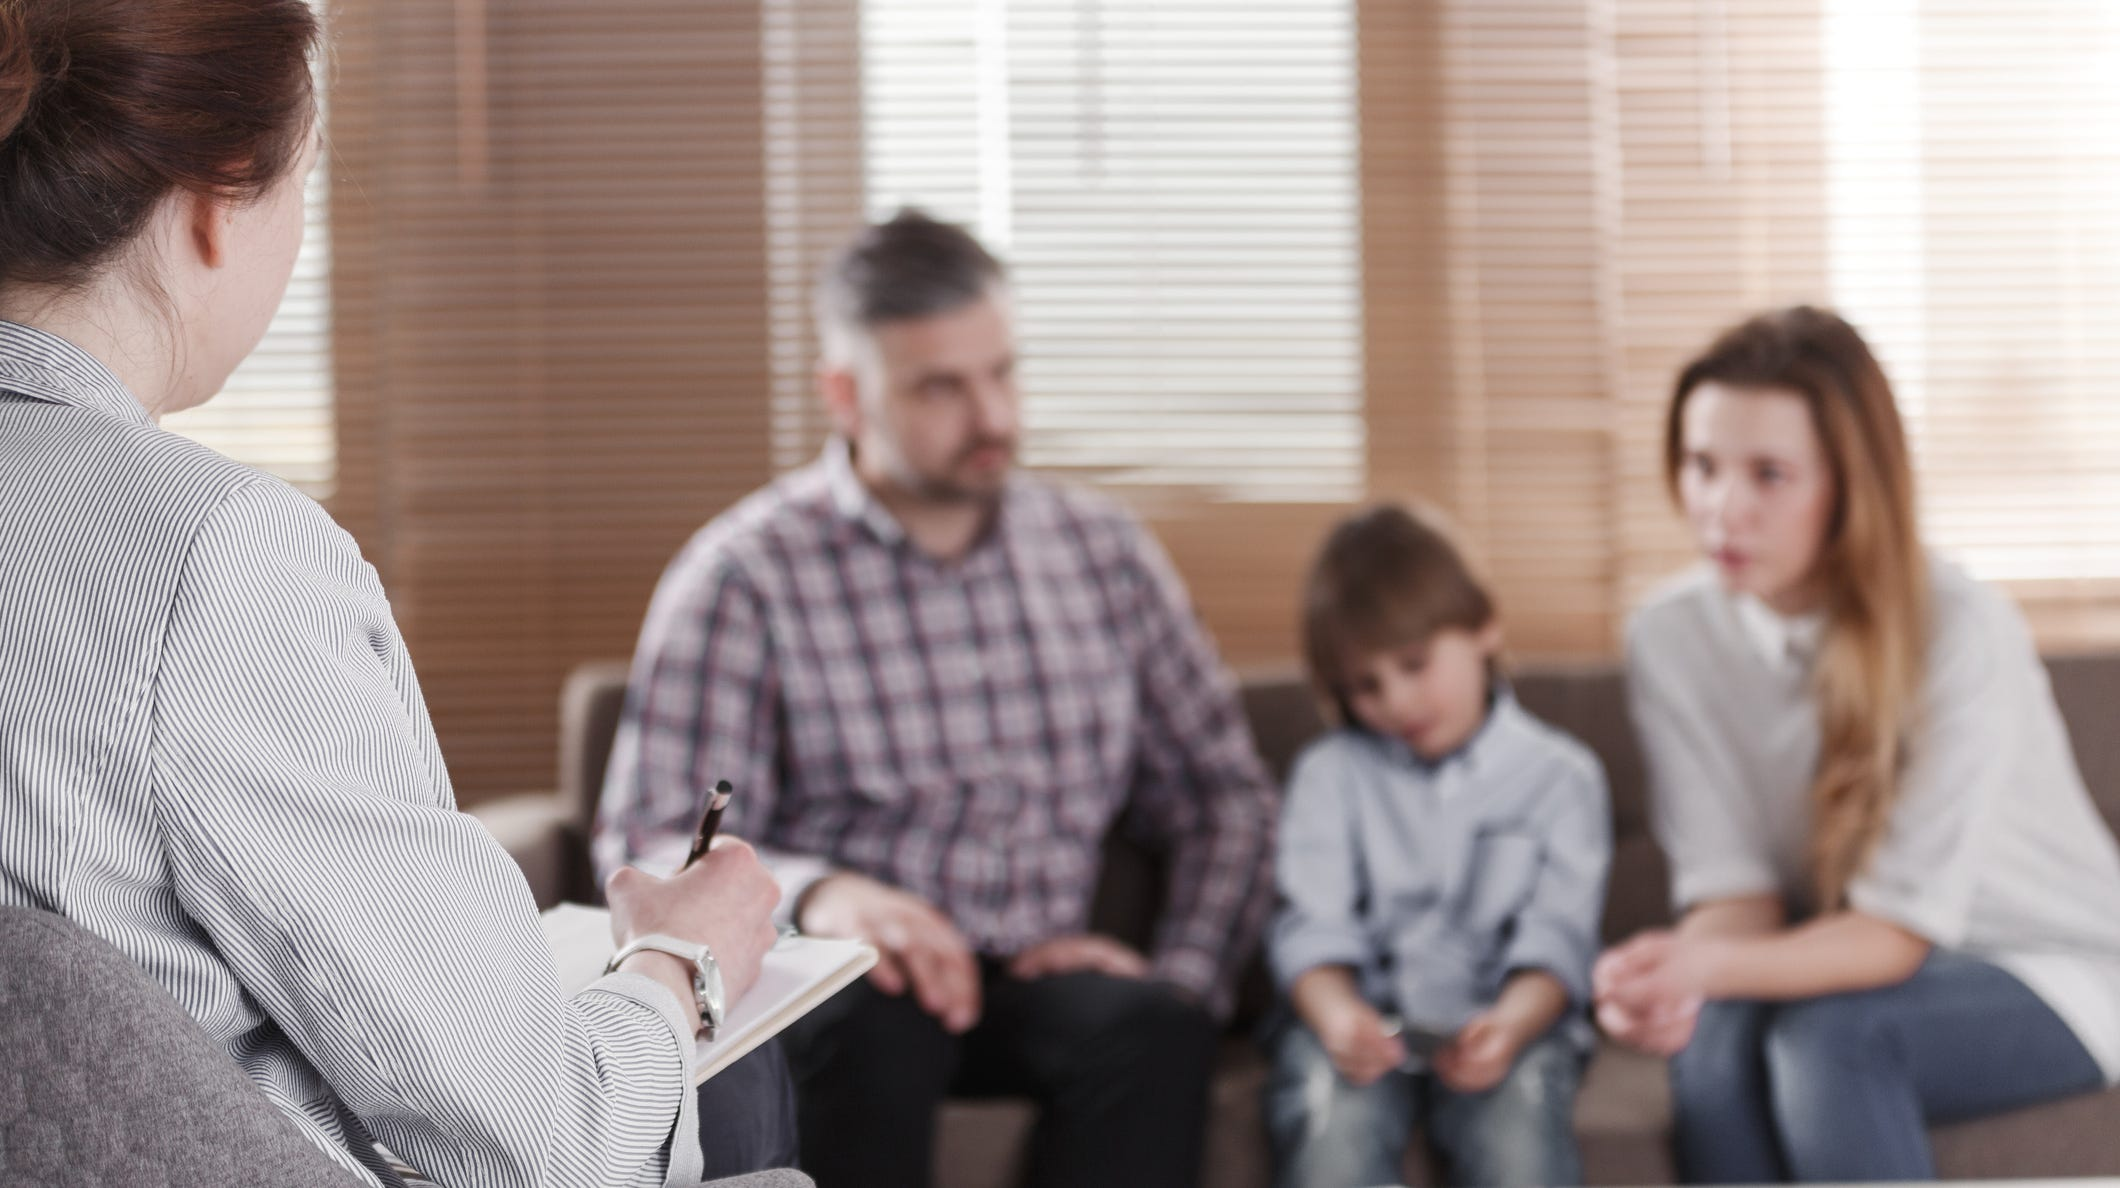 Many have ideas of what the foster care system is – but how many really know what happens?